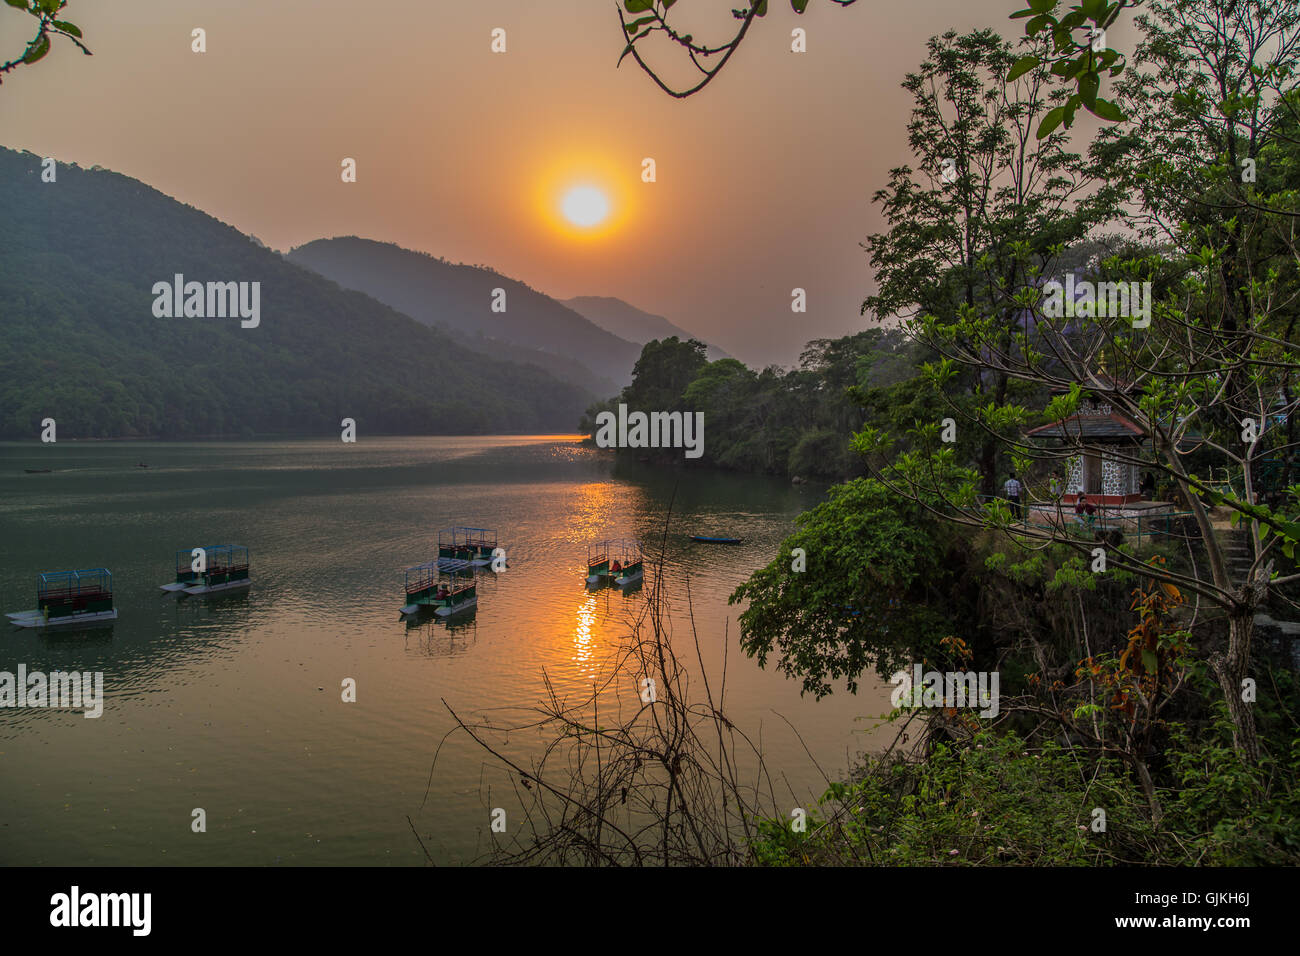 Boats on the lake in Pokhara, Nepal at sunset - Stock Image